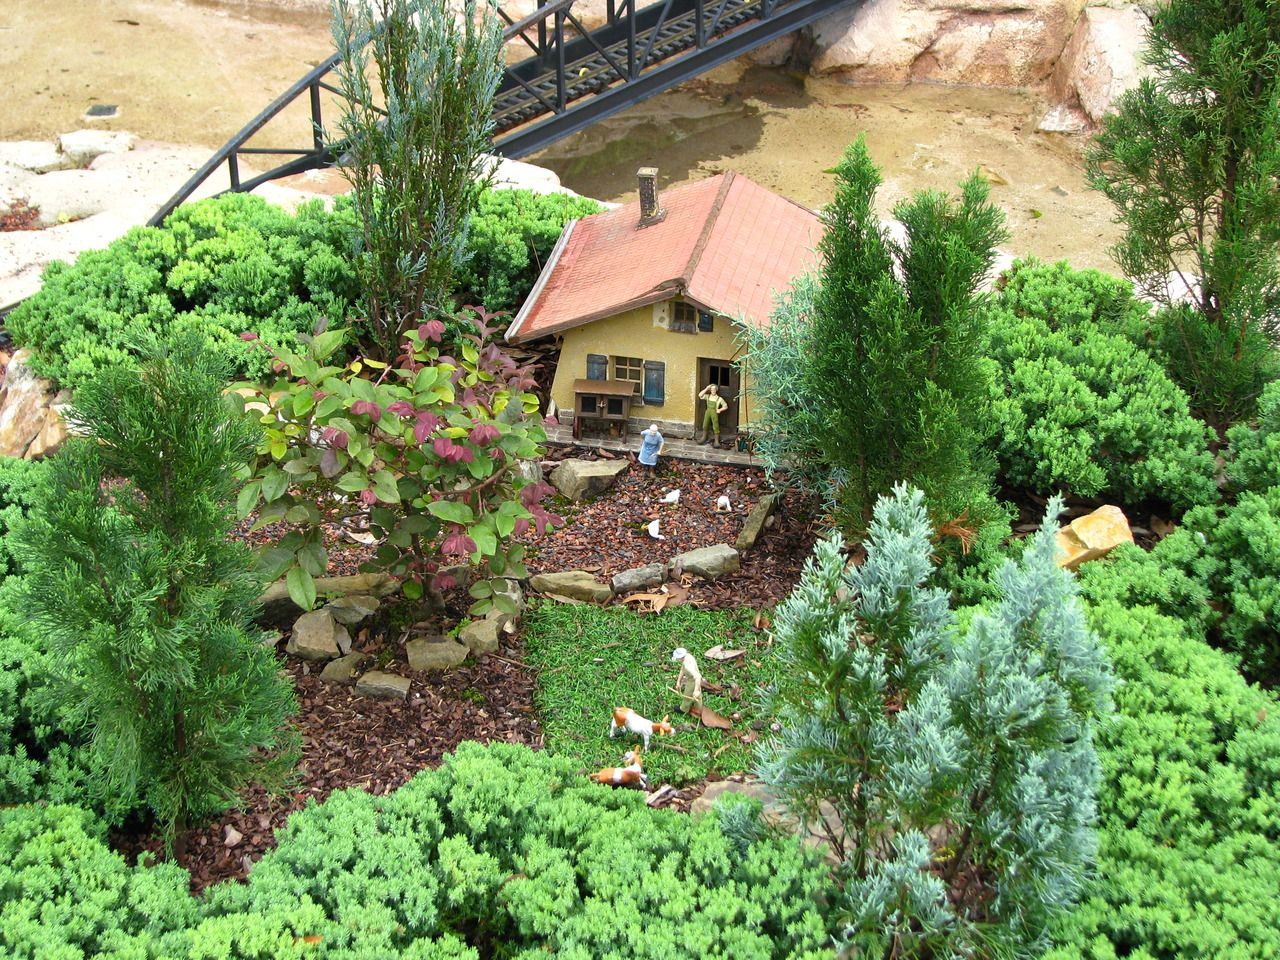 All The Small Things-So recently, I went to Walt Disney World.  The above pictures are from the Germany Pavilion in Epcot.  One of the gardens is a miniature village with several LGB trains going around.  Of course, my favorite was the little castle perched on top, looking over everything else.